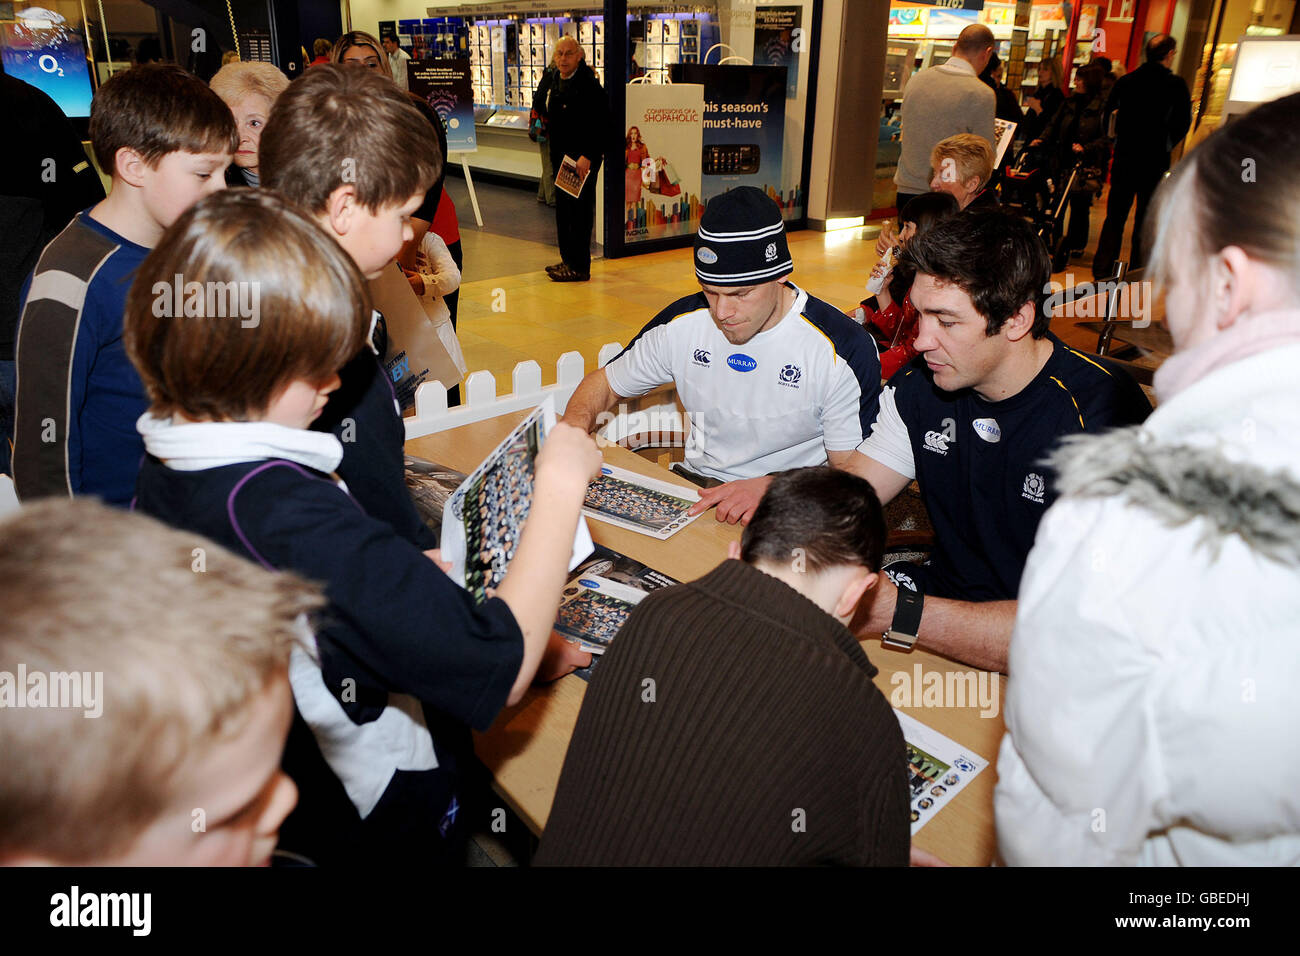 Rugby Union - Scotland Rugby Fun Day - Ocean Terminal - Stock Image